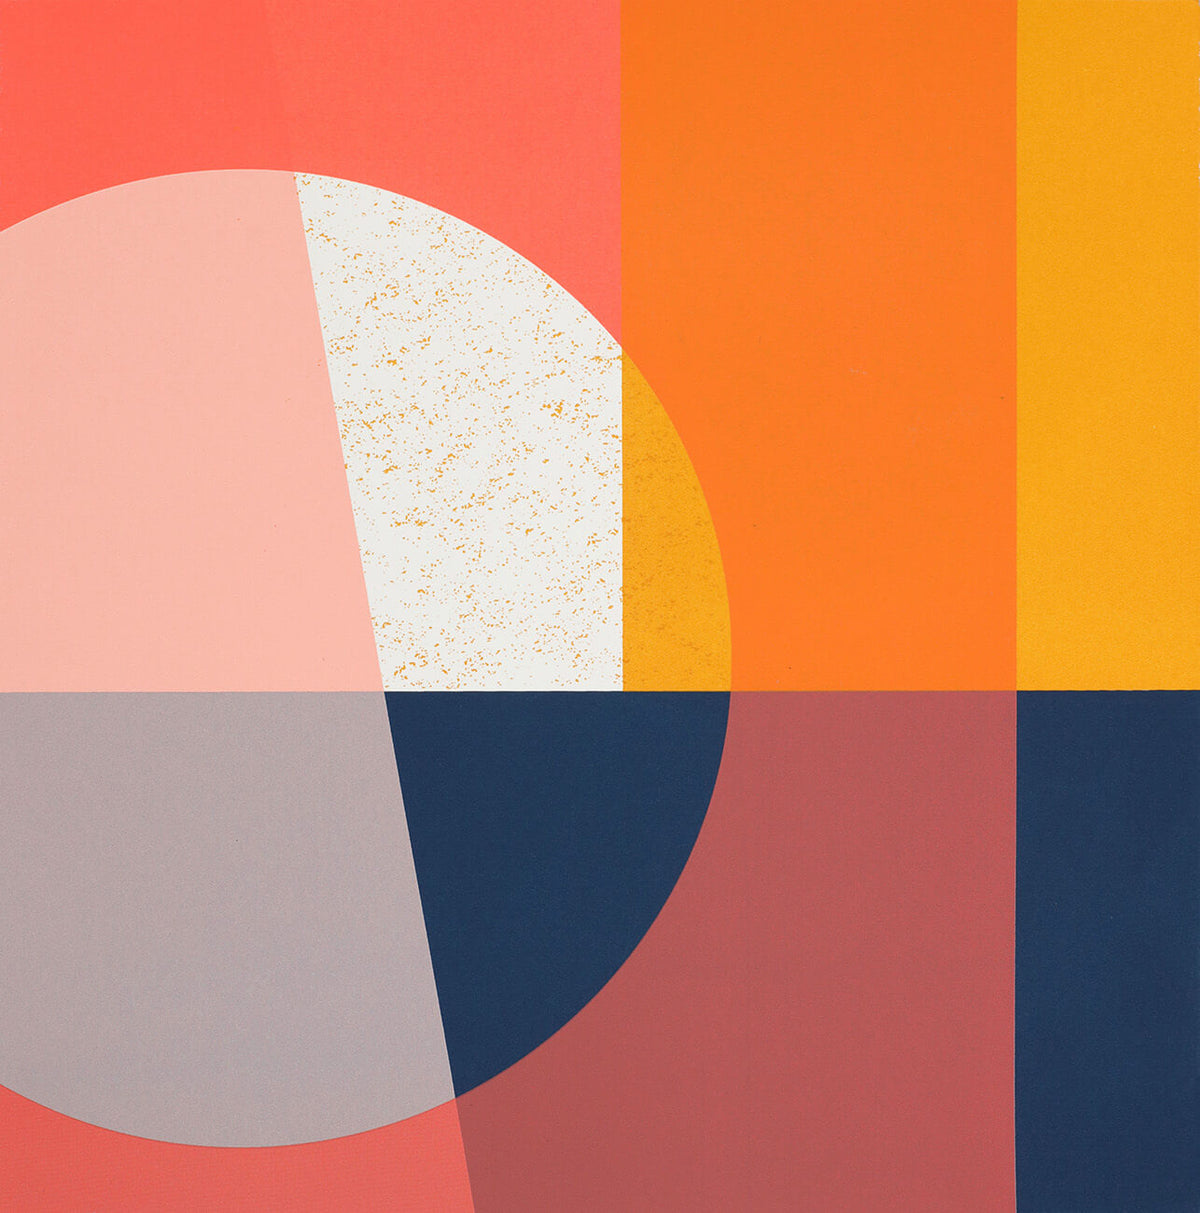 Abstract pop art screenprint with orange in a limited edition by Josie Blue Molloy